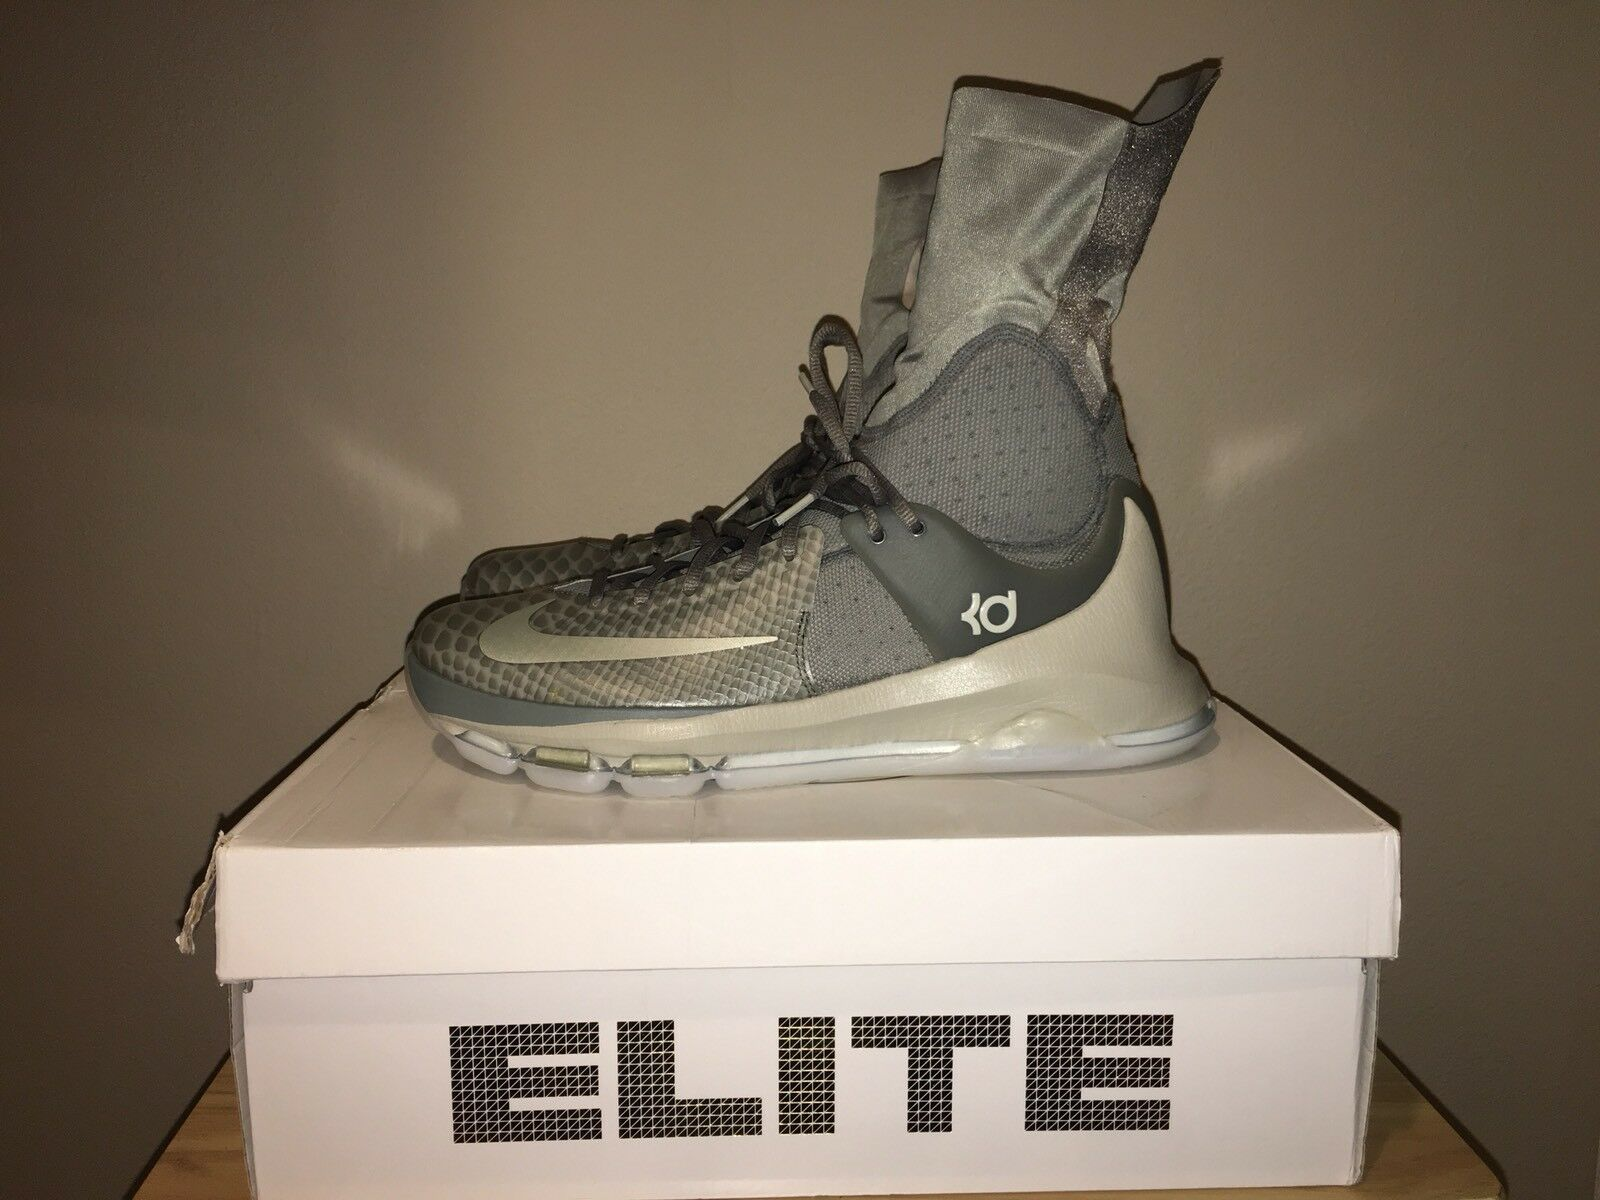 The most popular shoes for men and women Nike KD 8 Elite Gray Shoes 834185 001 Grey Men's 11.5 New With Box MSRPPrice reduction